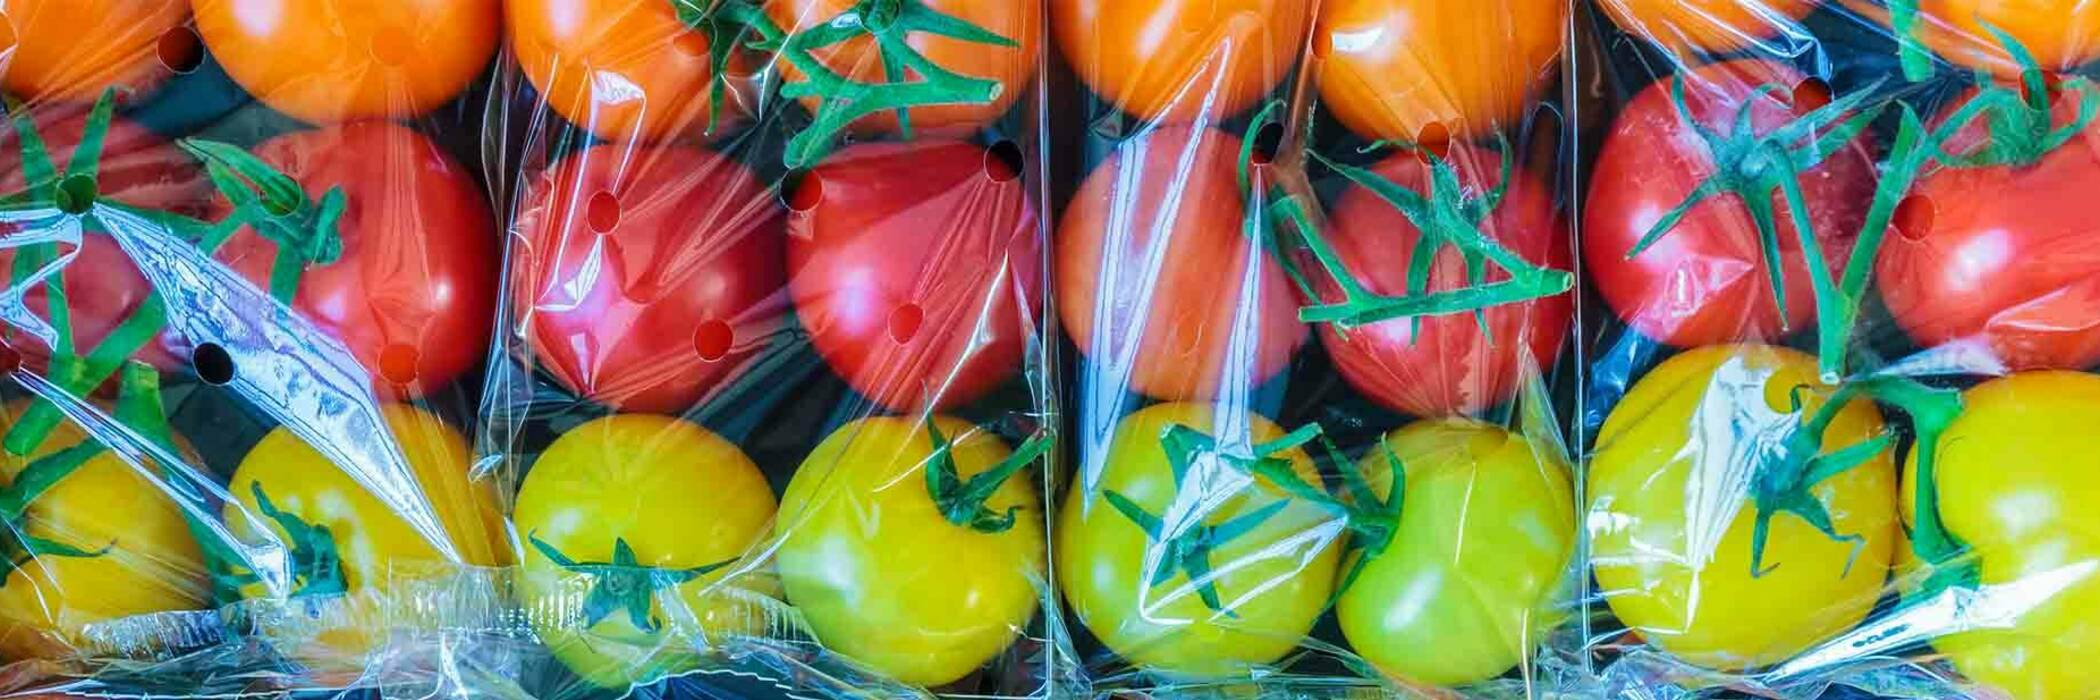 Tomatoes packaged in plastic.